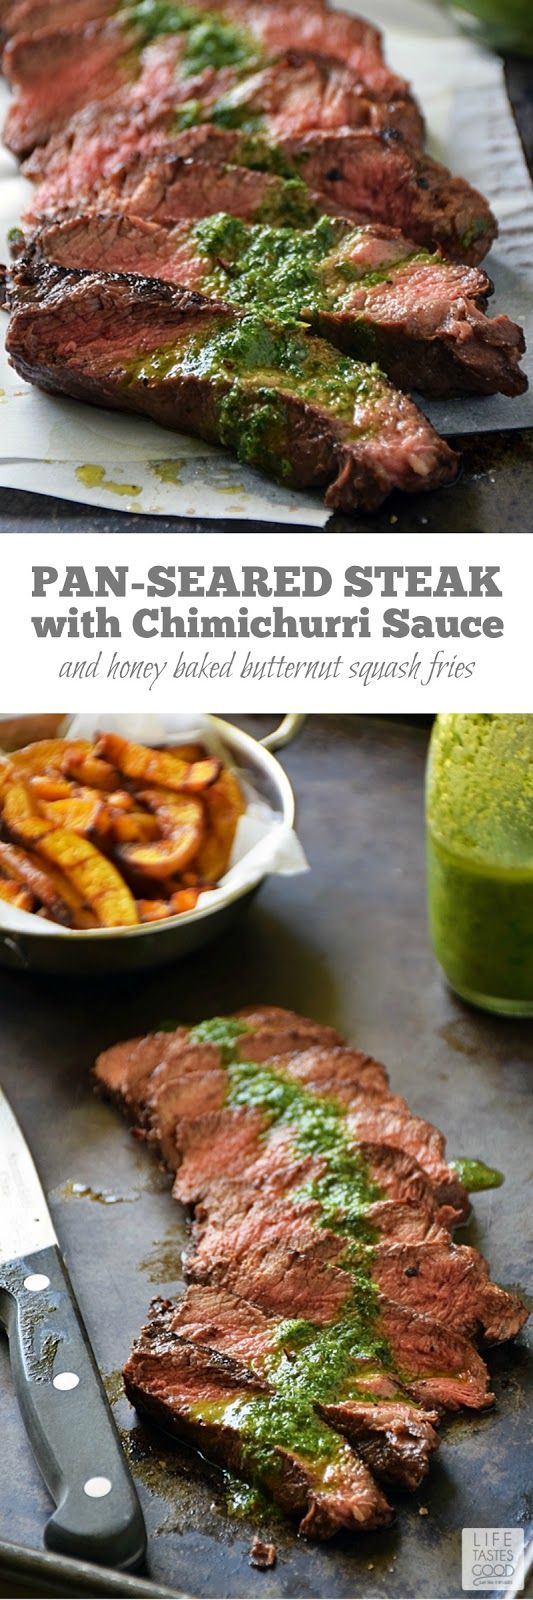 Pan-Seared Steak with Chimichurri sauce | by Life Tastes Good is an easy to make dinner any night of the week! Flat-iron steak is one of the most flavorful cuts, and it is more budget-friendly than some other popular cuts, which makes it a great choice for #WeekdaySupper! #LTGrecipes